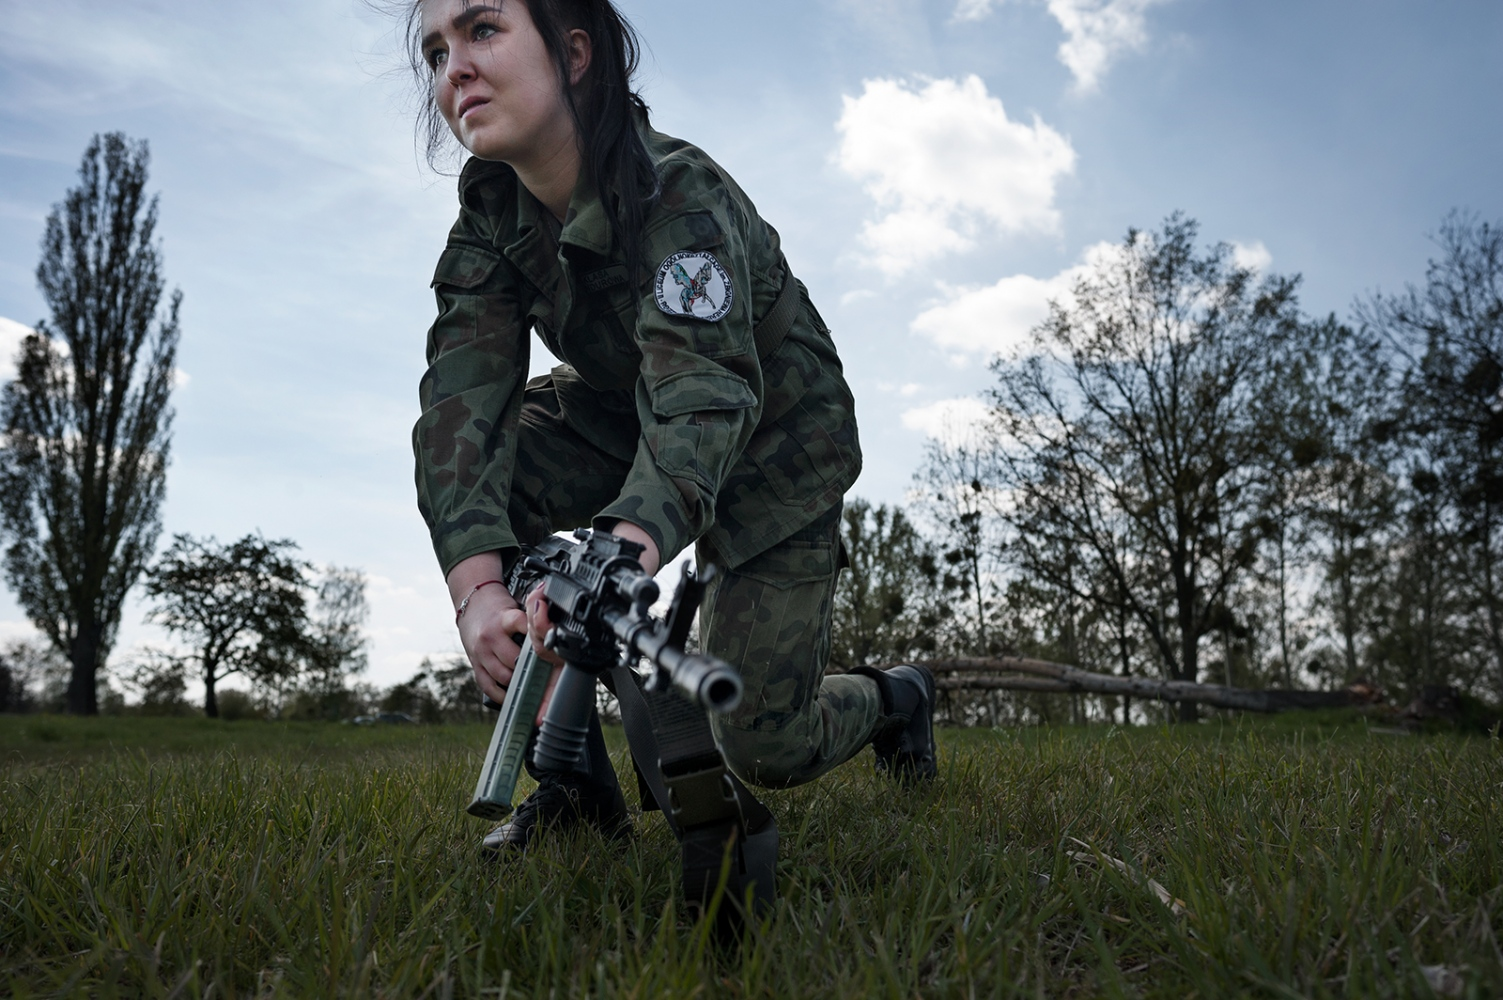 """One student (17 years old) from the public high school in B. during practical activities carried out by the Polish Army within the frame ofa """"Military Profile Classes"""" program in public school. During those activities students handle real weapons and shoot with real ammunition."""